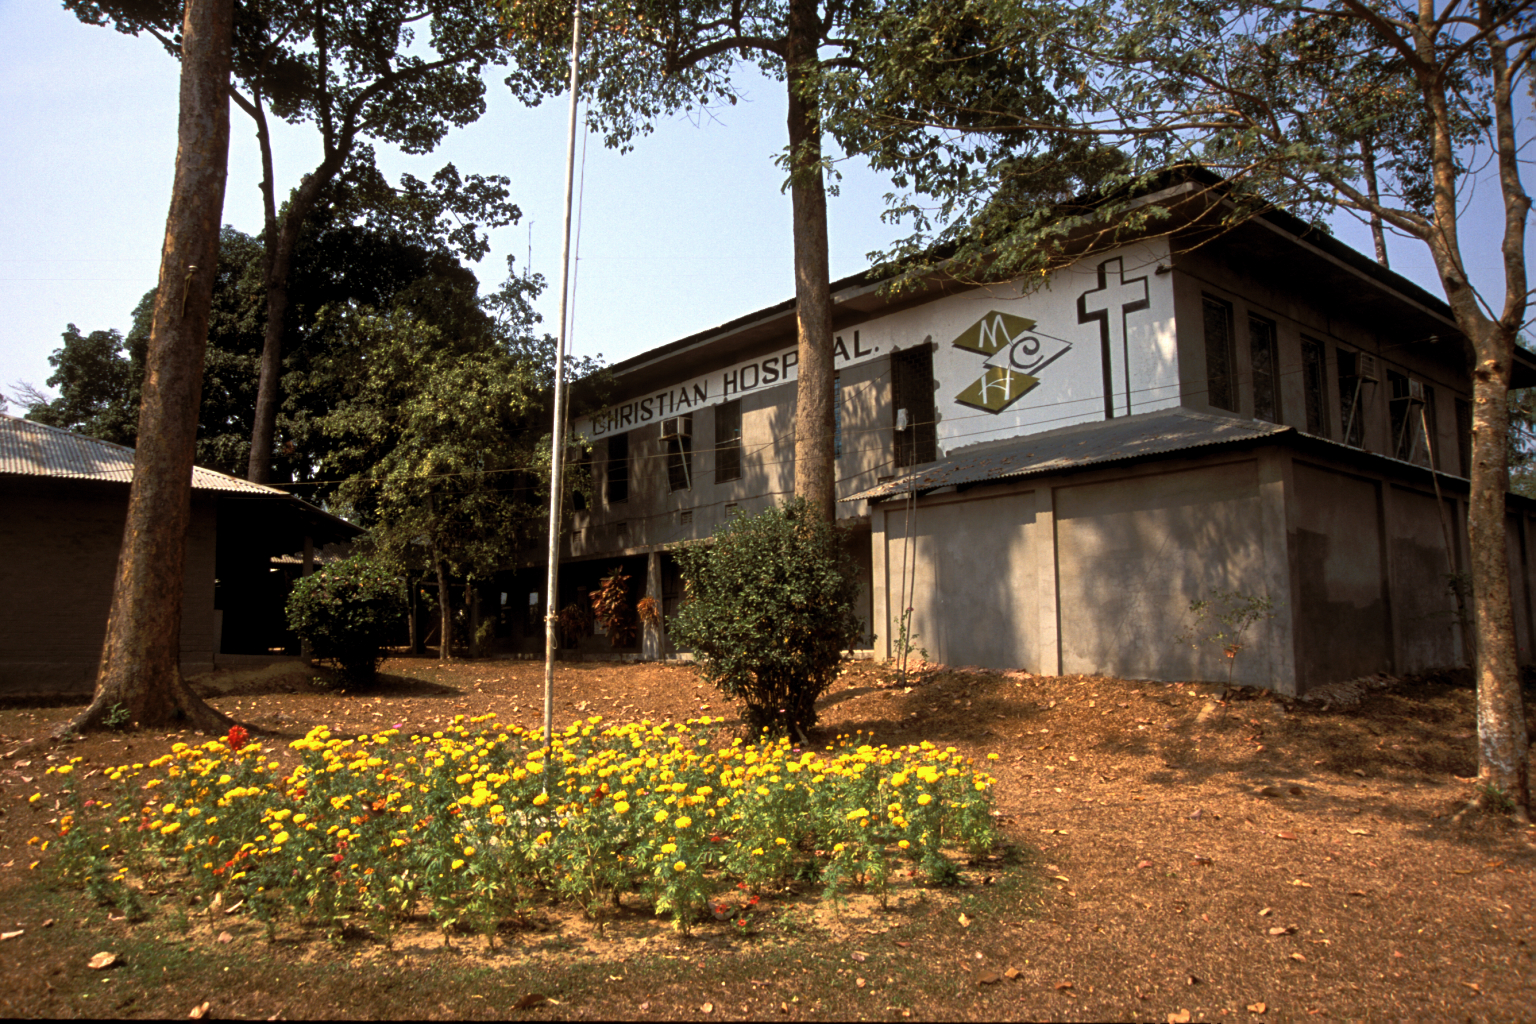 Memorial Christian Hospital in Malumghat, Bangladesh